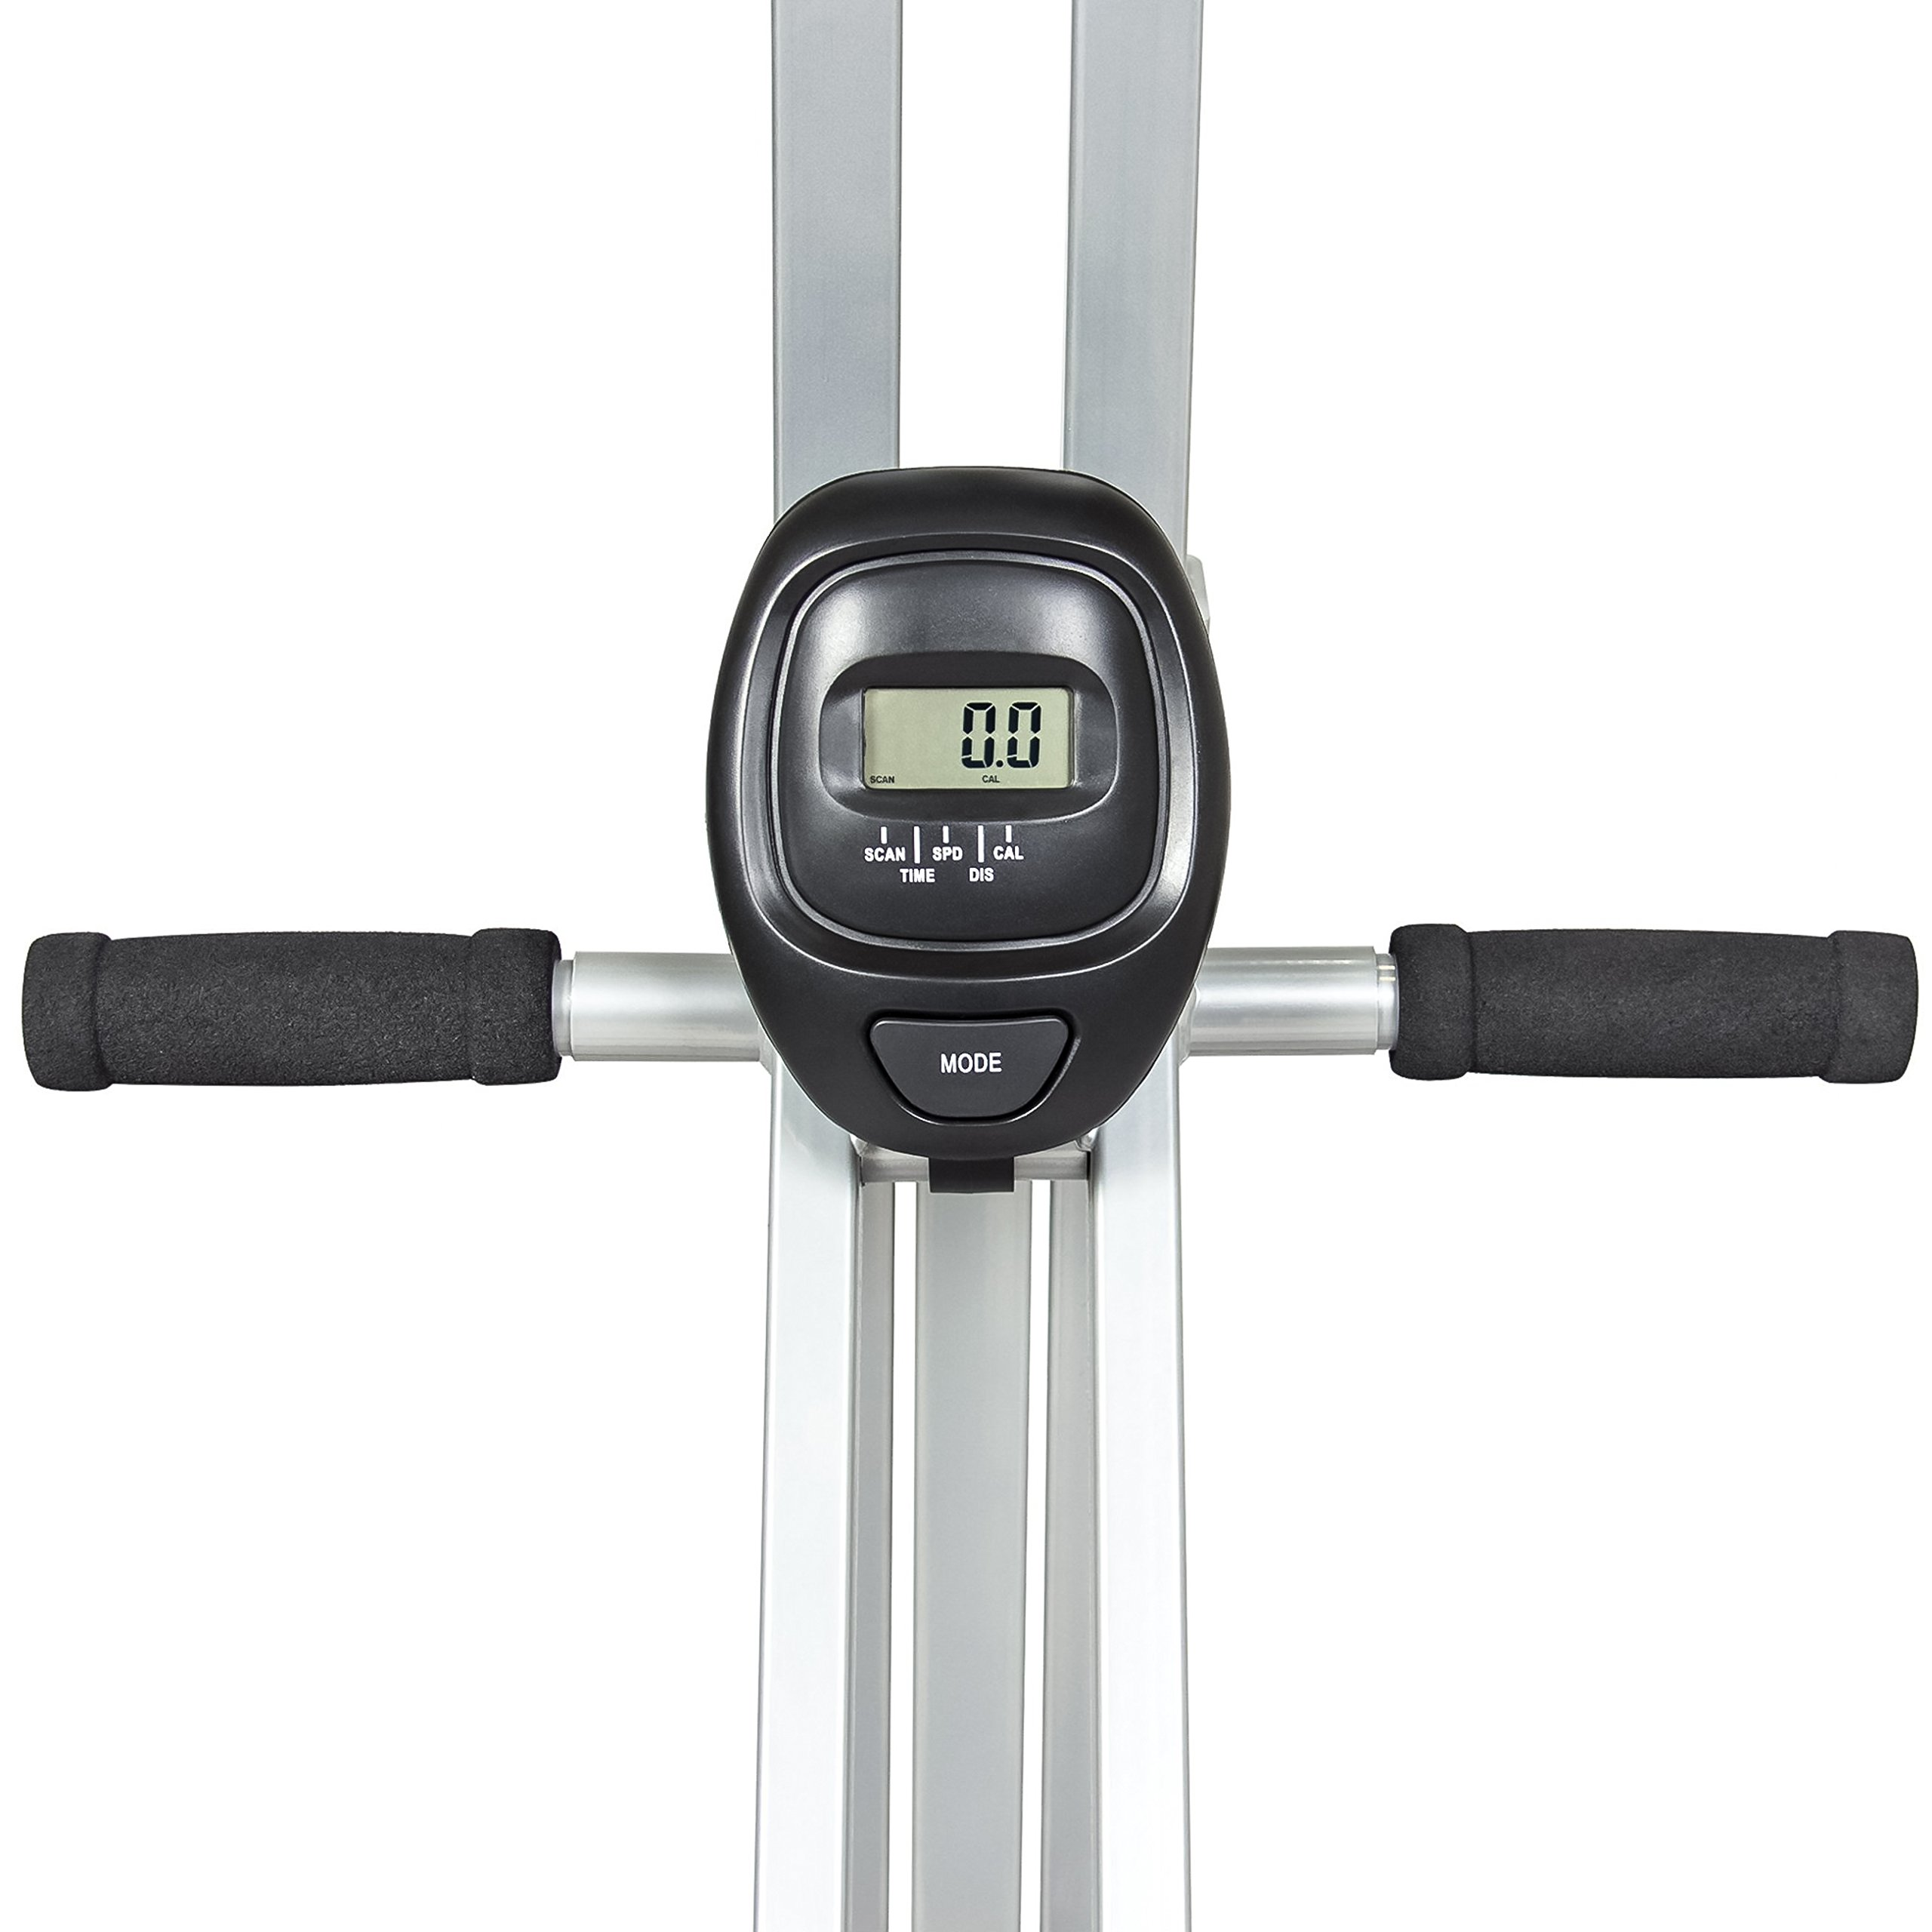 Best Choice Products Total Body 2-in-1 Vertical Climber Magnetic Exercise Bike Fitness Machine by Best Choice Products (Image #4)